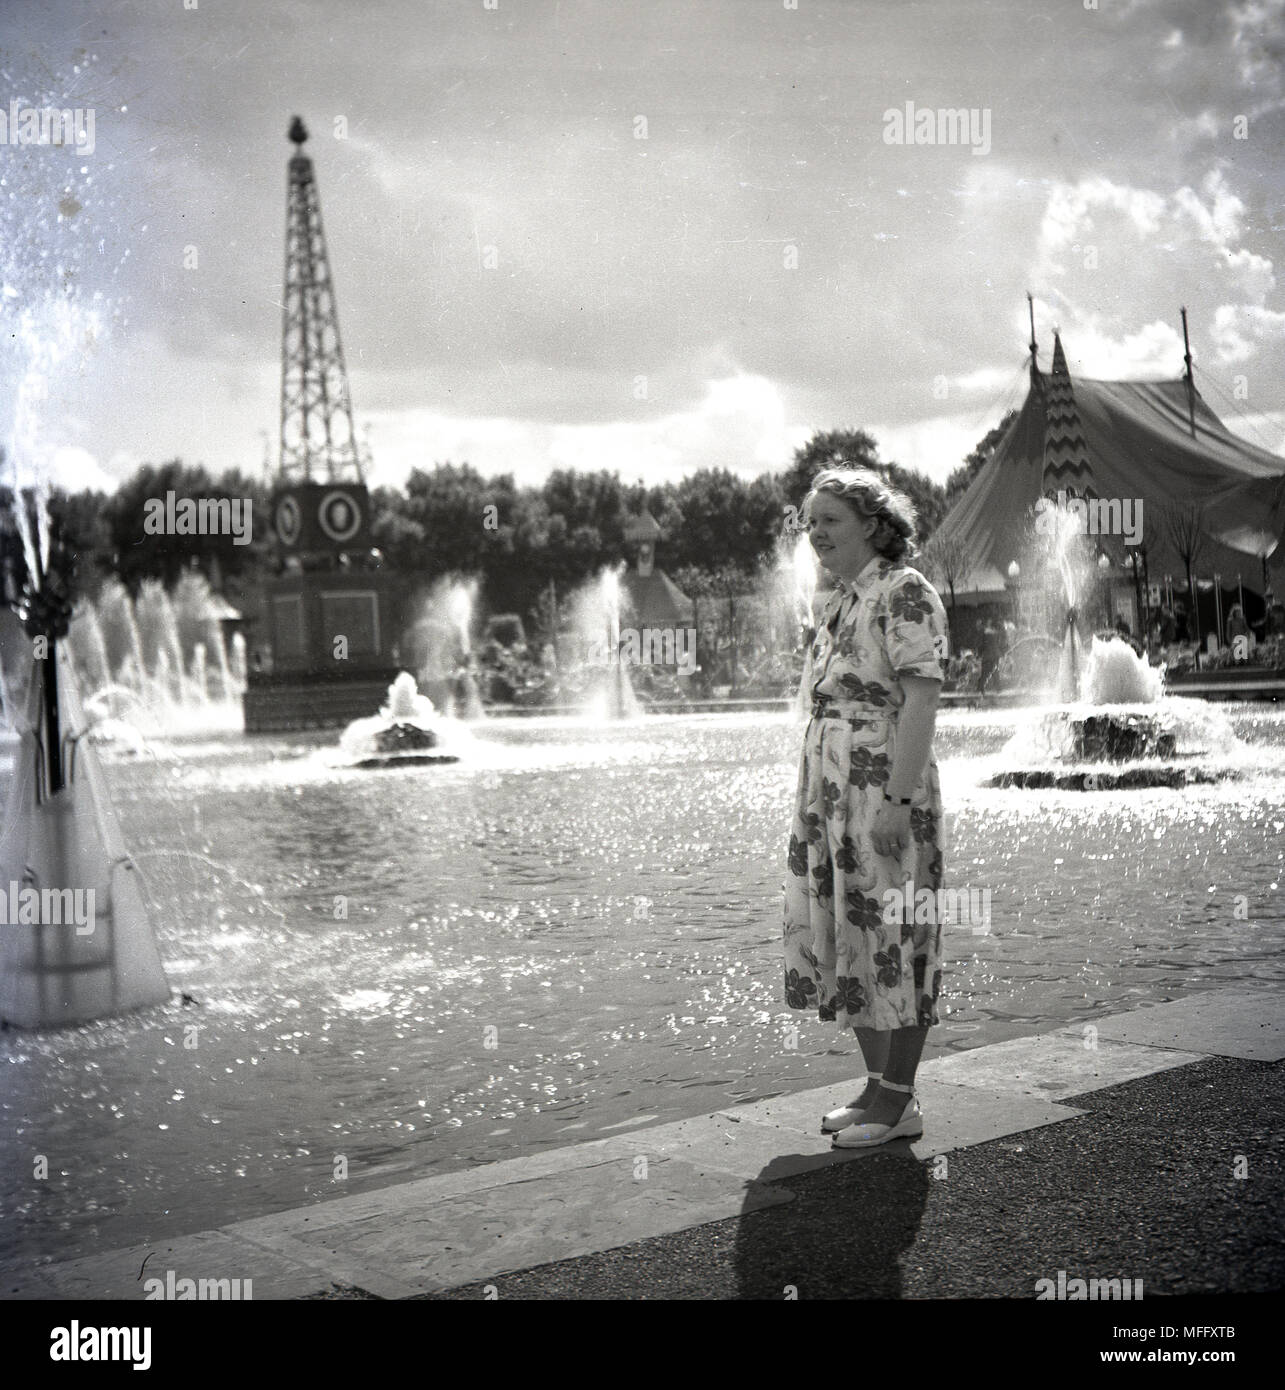 1951, historical, lady in a flowery dress standing by a water display with fountains at the Festival of Britain, Battersea Park, London, England, UK. The idea behind the festival was celebrating British industry, arts and science and inspiring the thought of a better Britain following the harshness of the post-ww2 era. - Stock Image